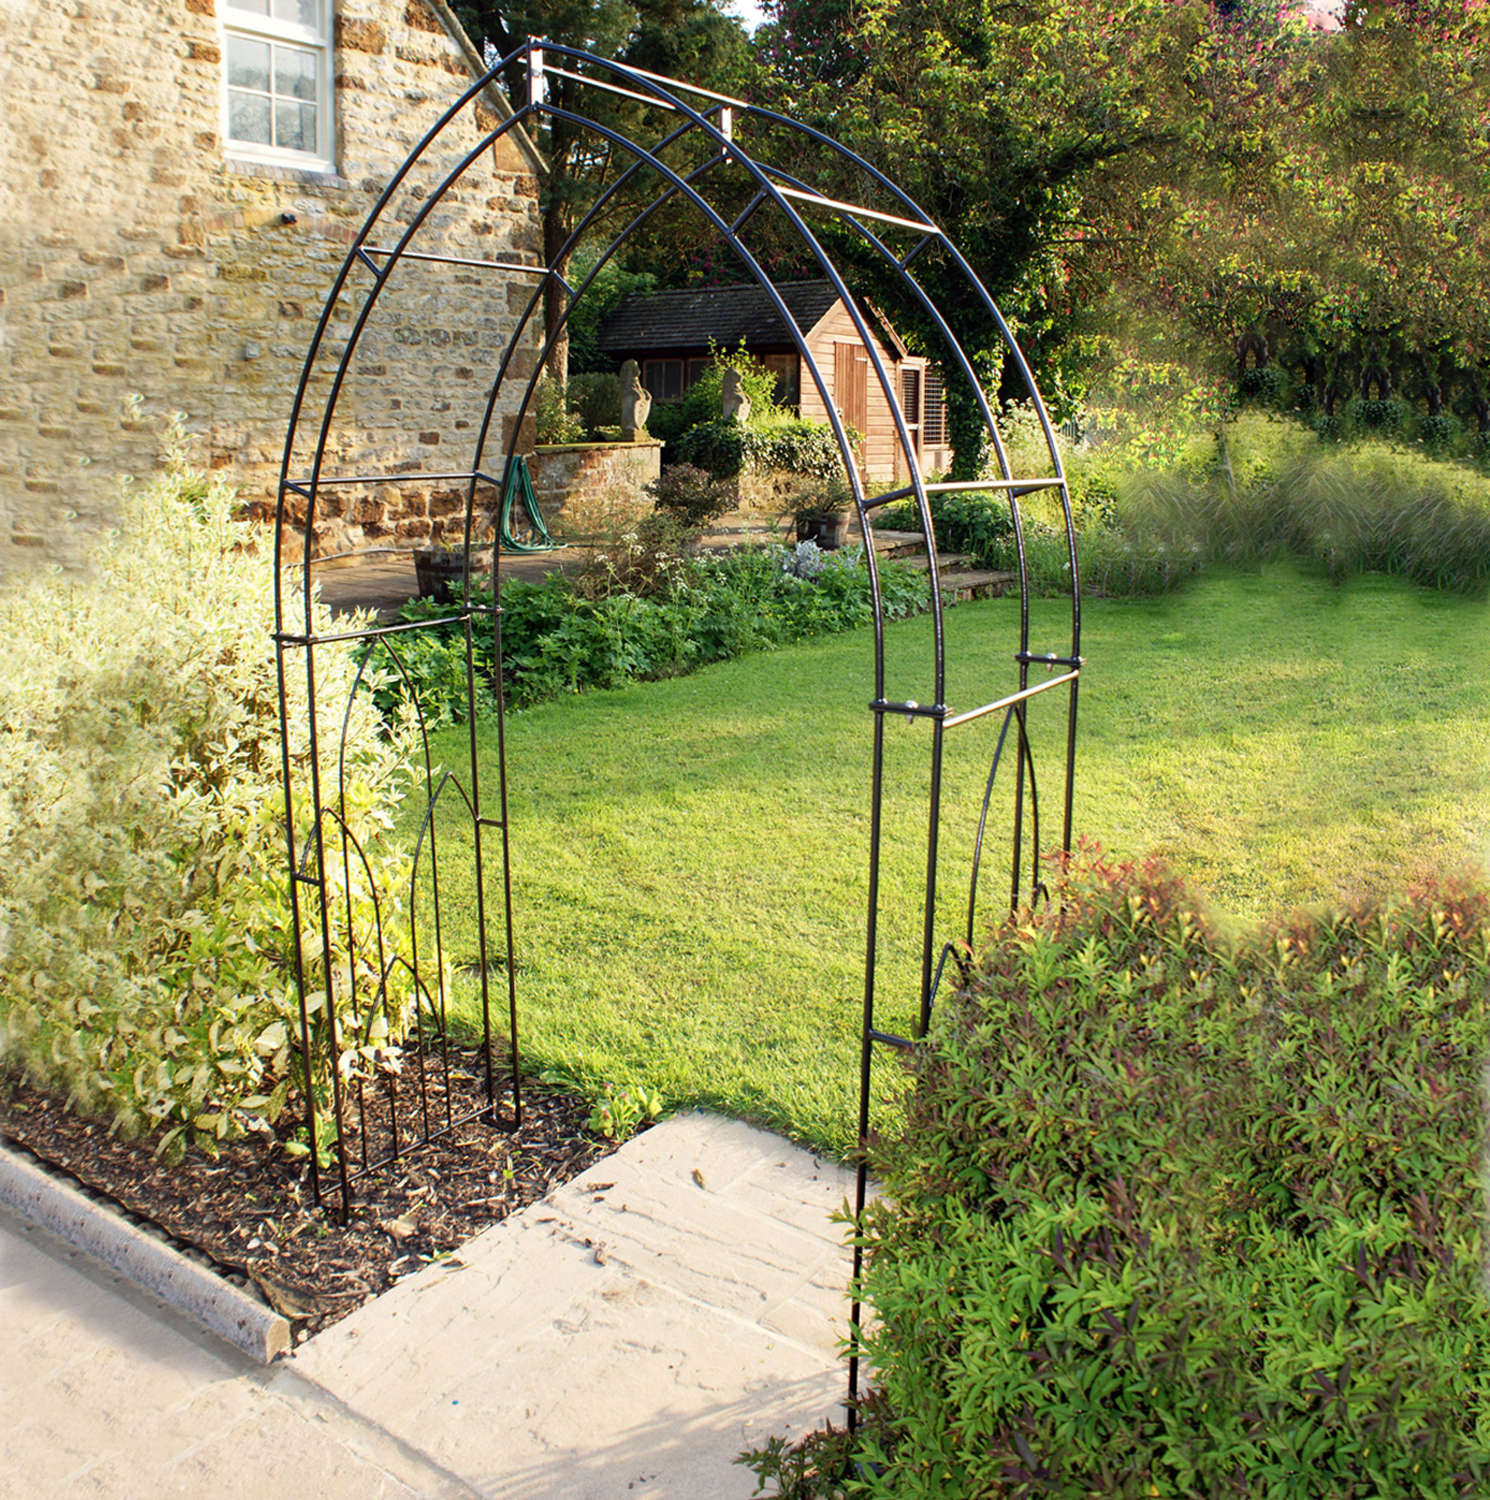 Poppyforge Gothic Arch manufactured in the UK